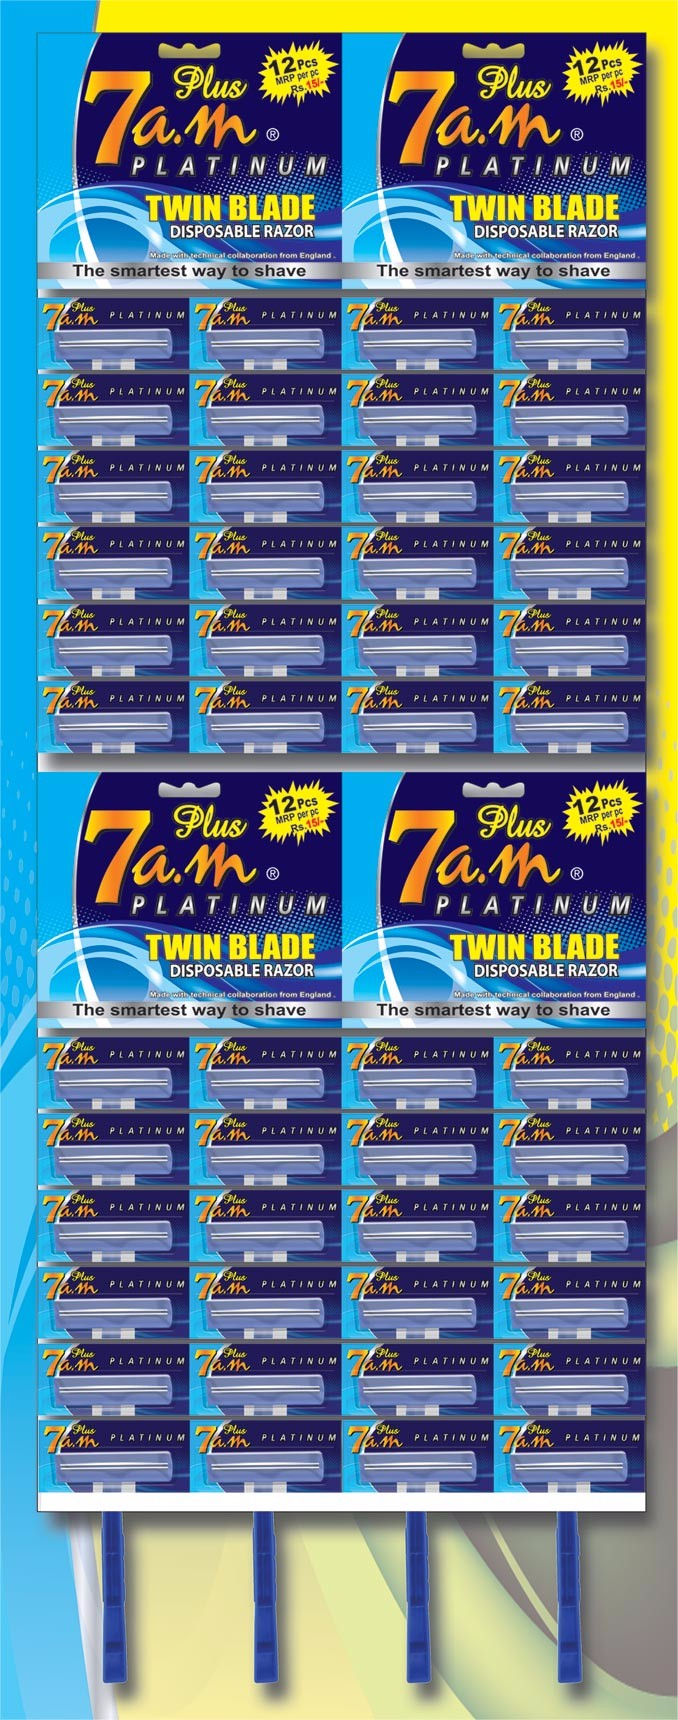 7AM PLUS TWIN BLADE DISPOSABLE RAZOR